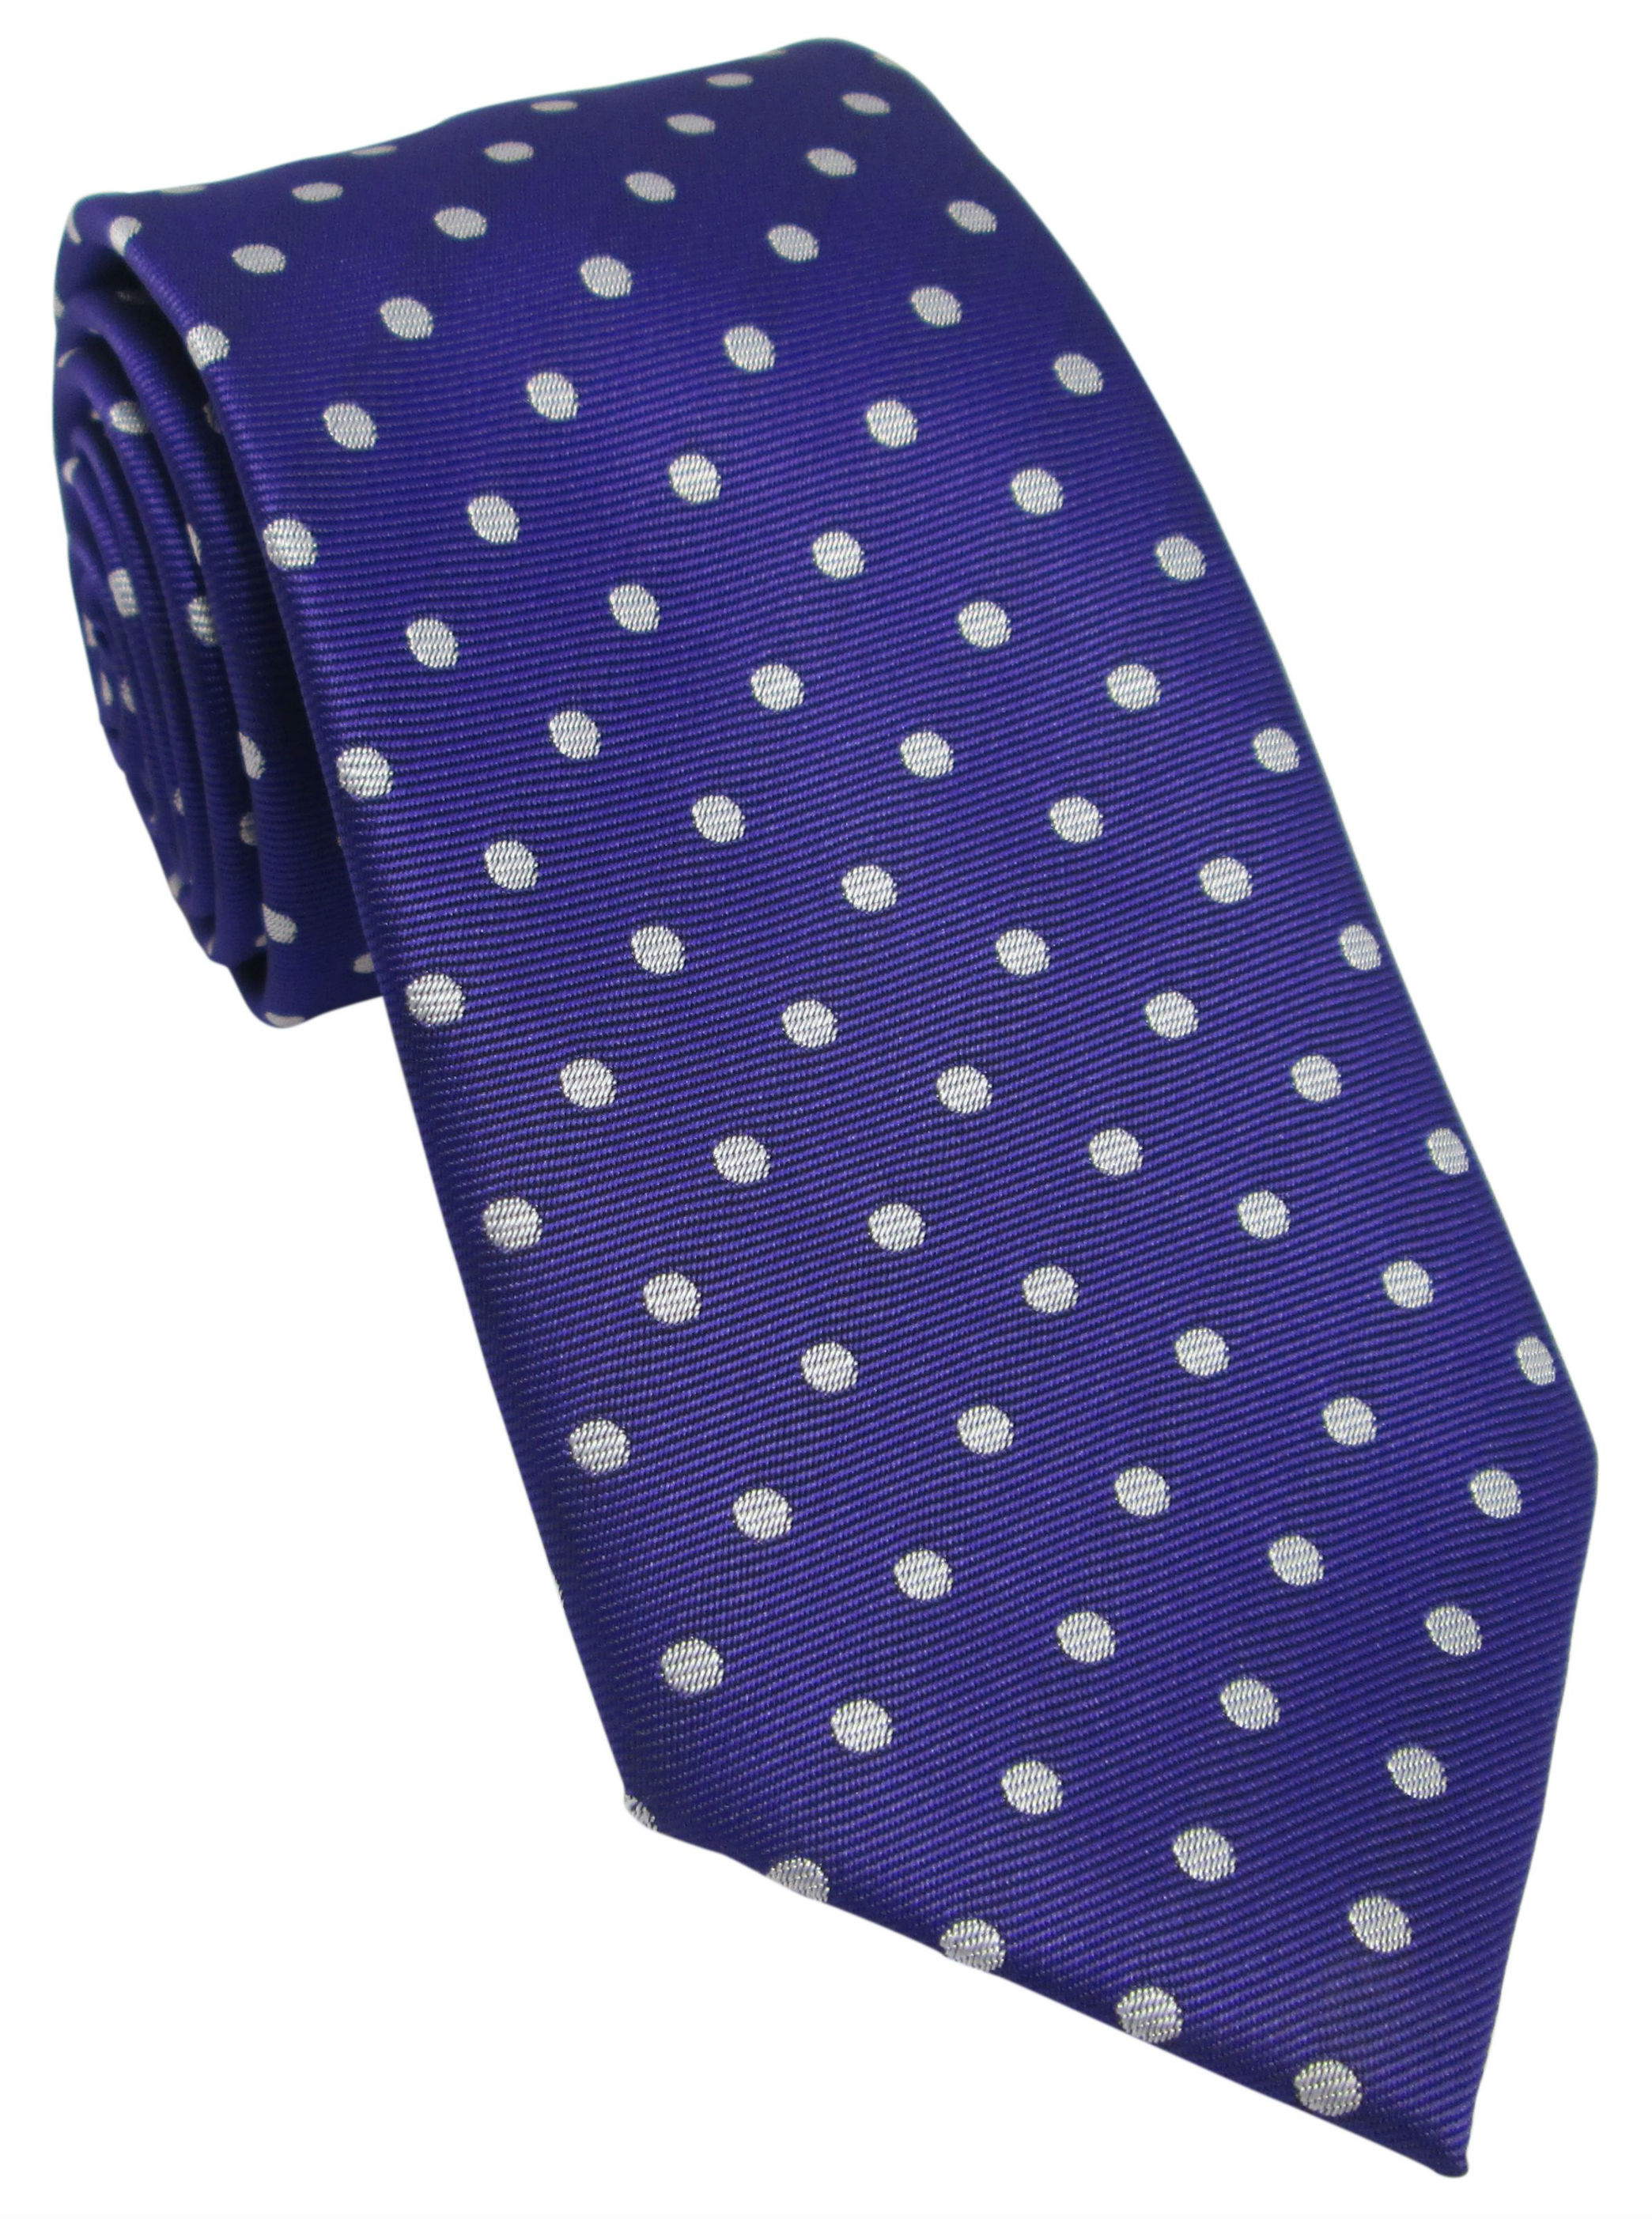 Purple with White Polka Dot Tie